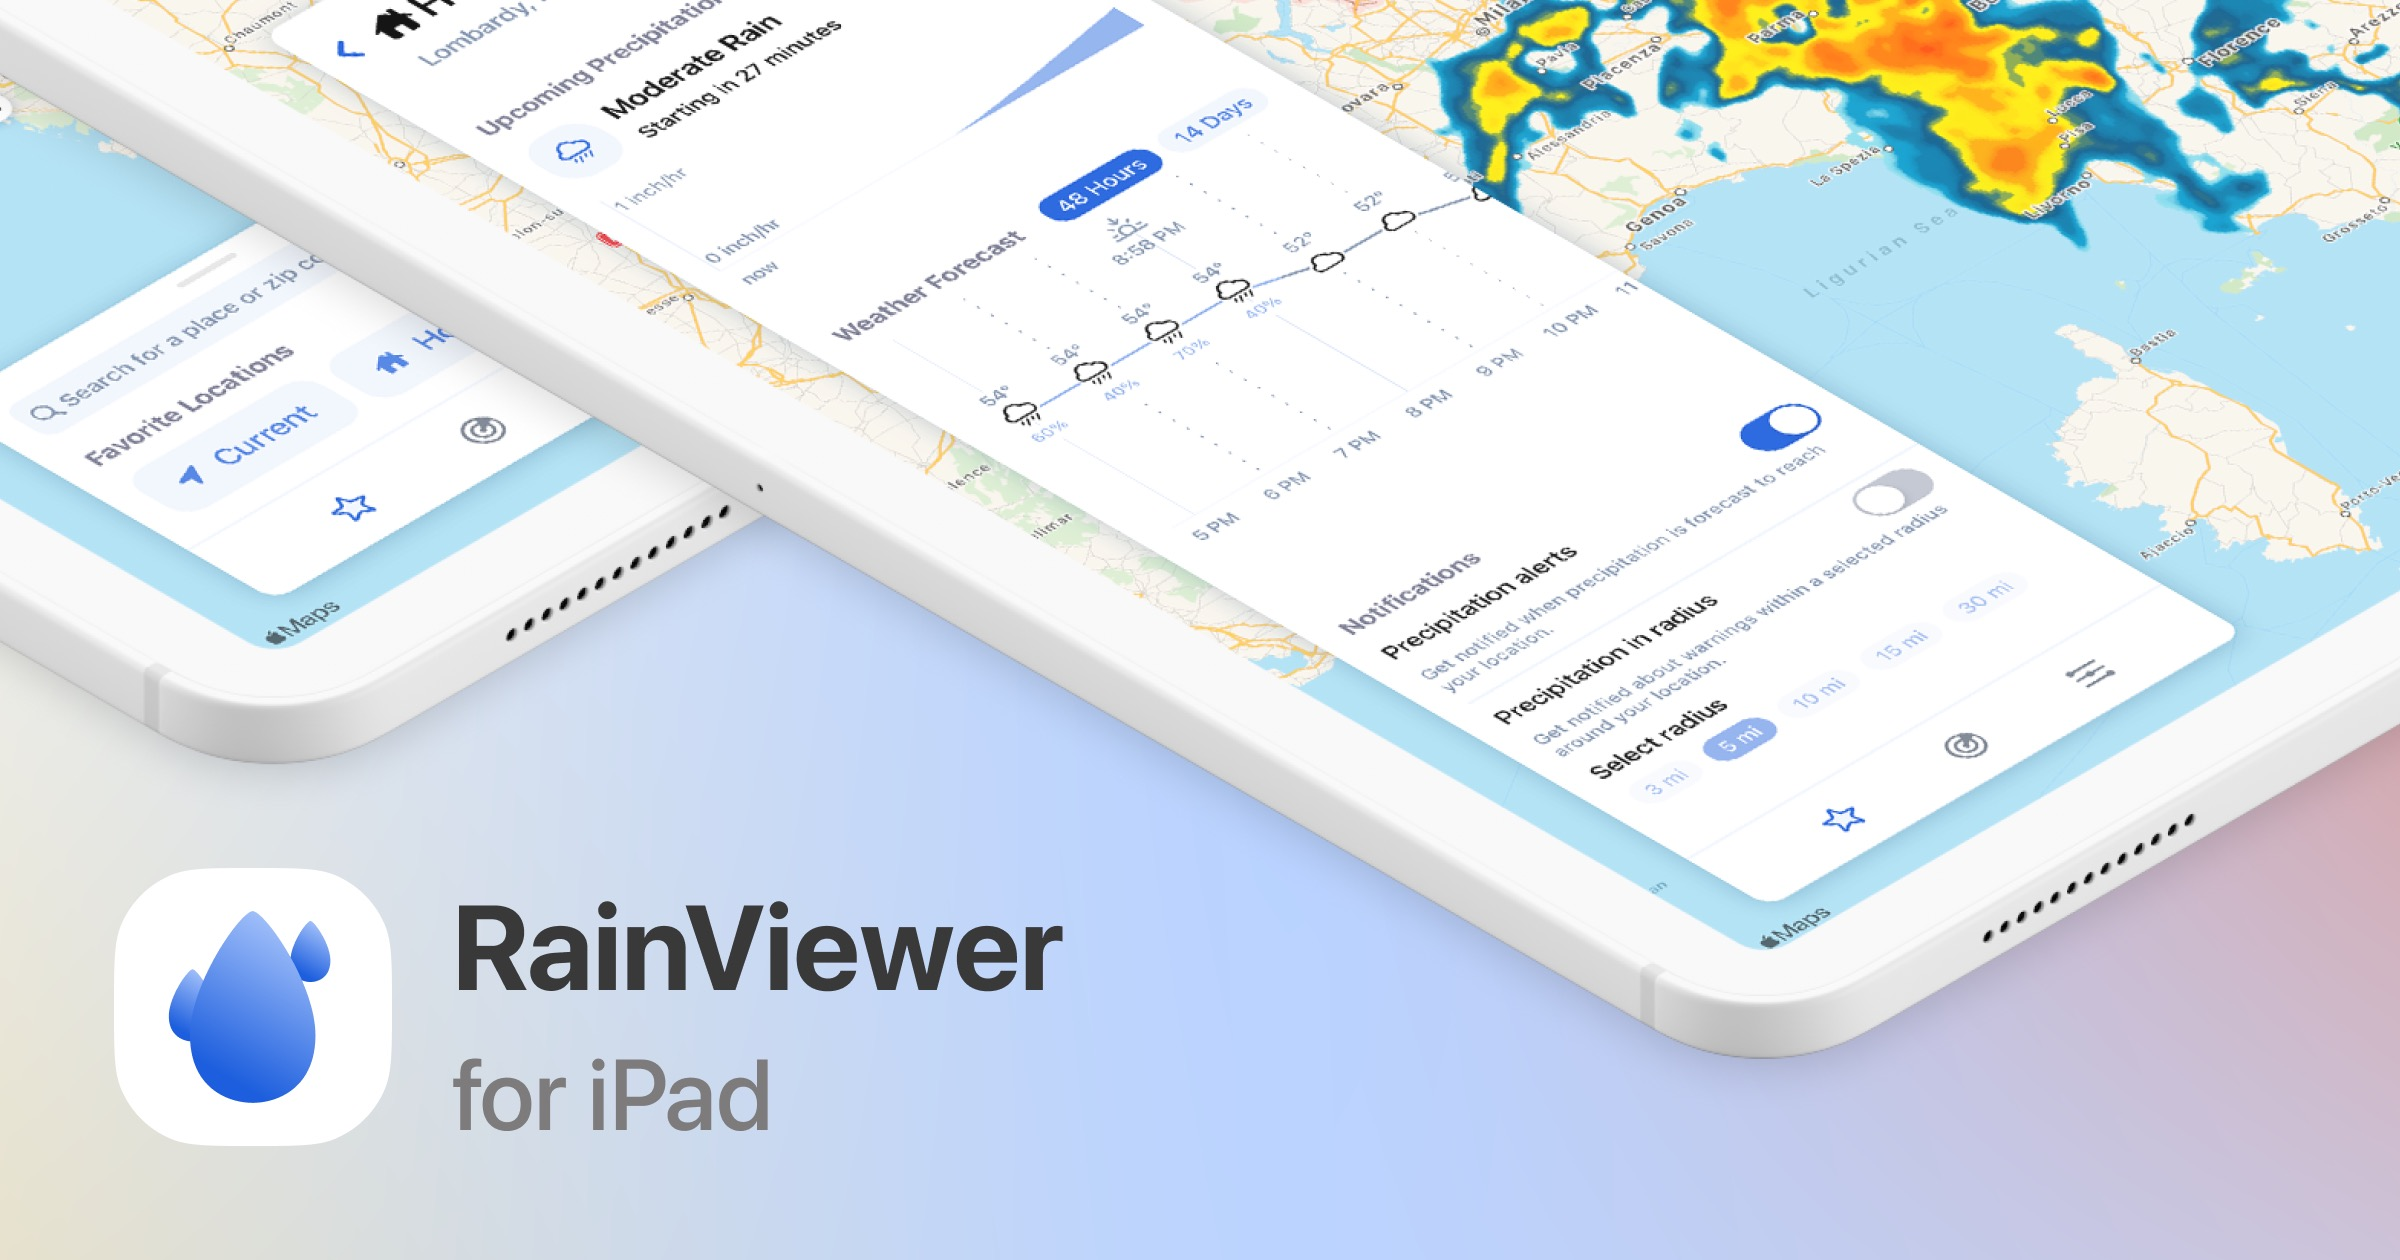 The RainViewer Weather App is Now a Full iPad App With Widgets